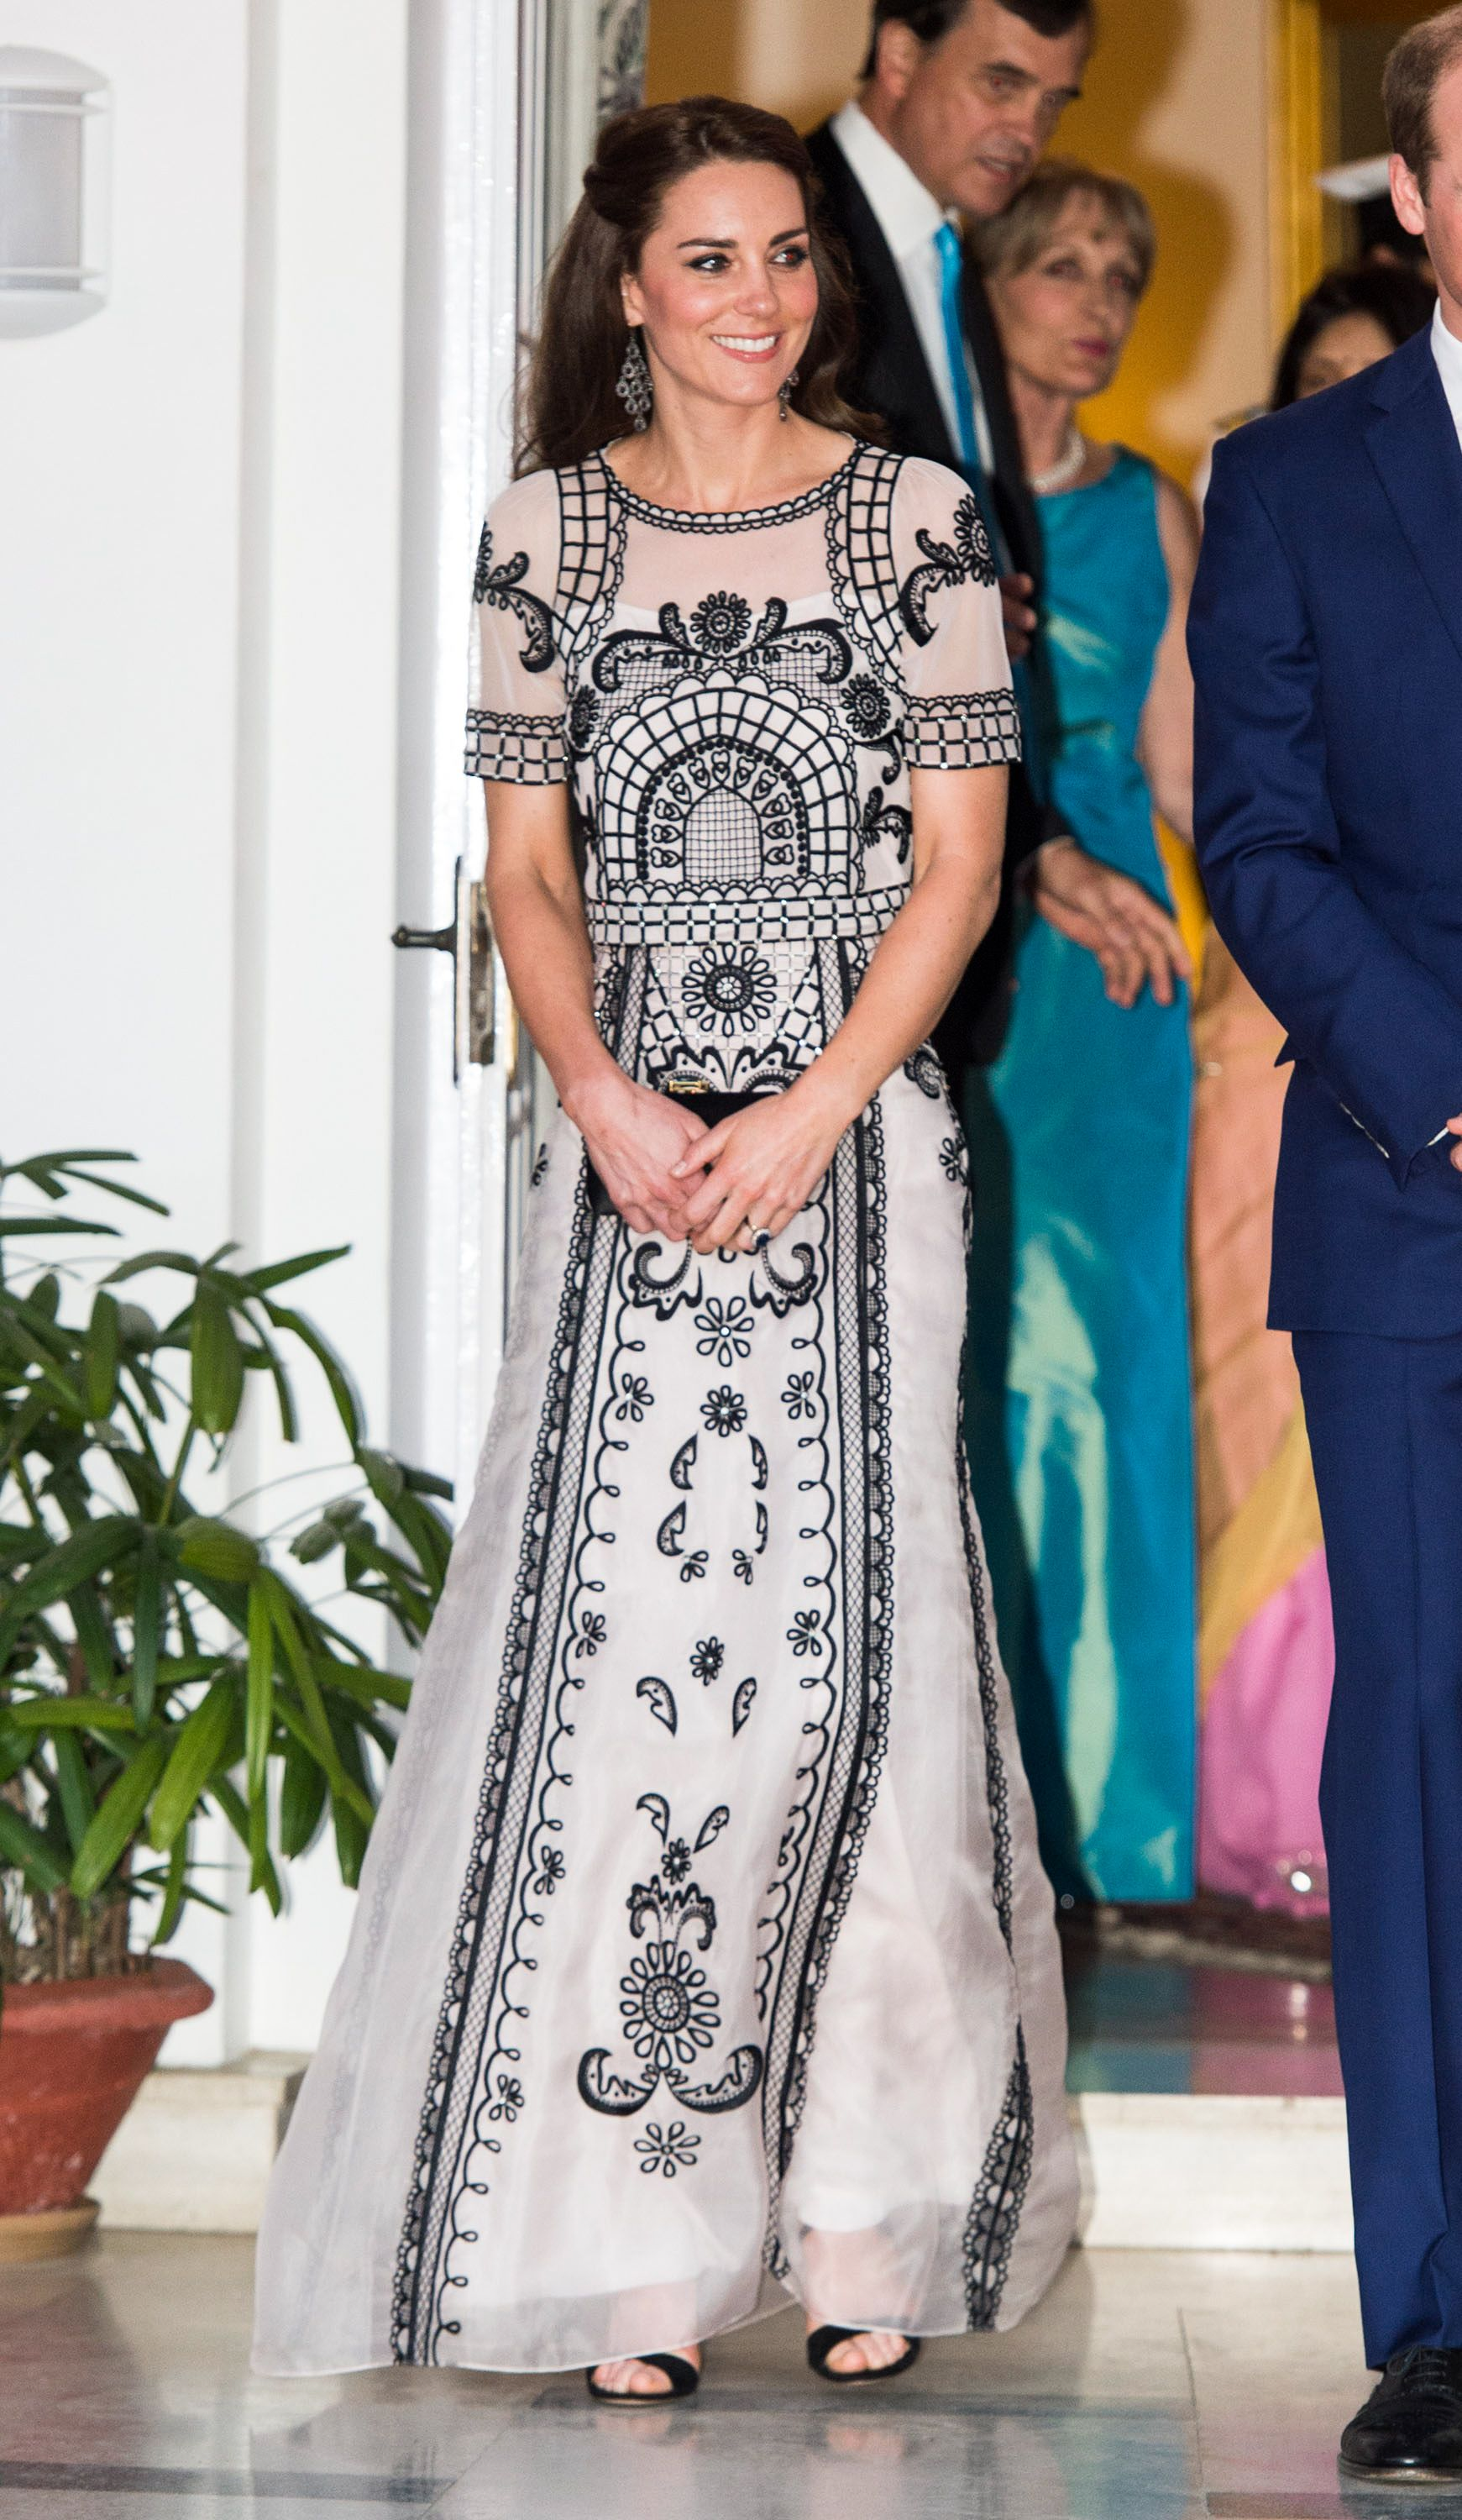 Kate Middleton S Outfits From Her Visit To India And Bhutan Pictures Of The Royal Tour Of India And Bhutan